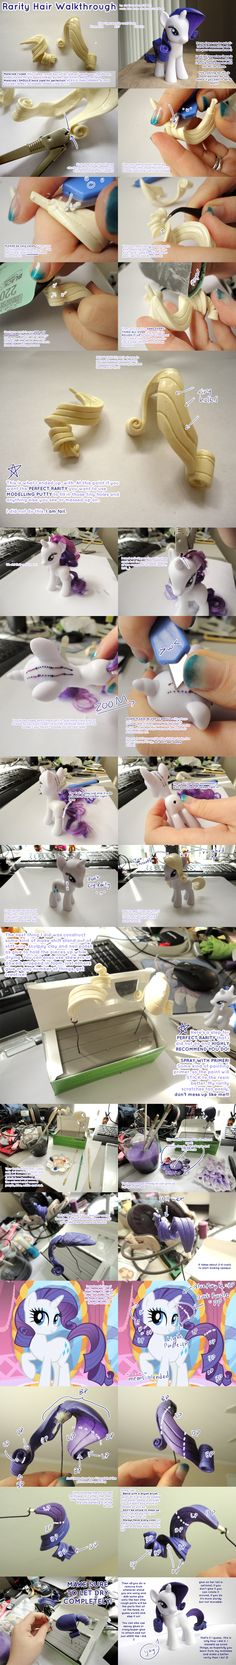 Rarity Solid Hair Walkthrough by Shattered-Earth.deviantart.com